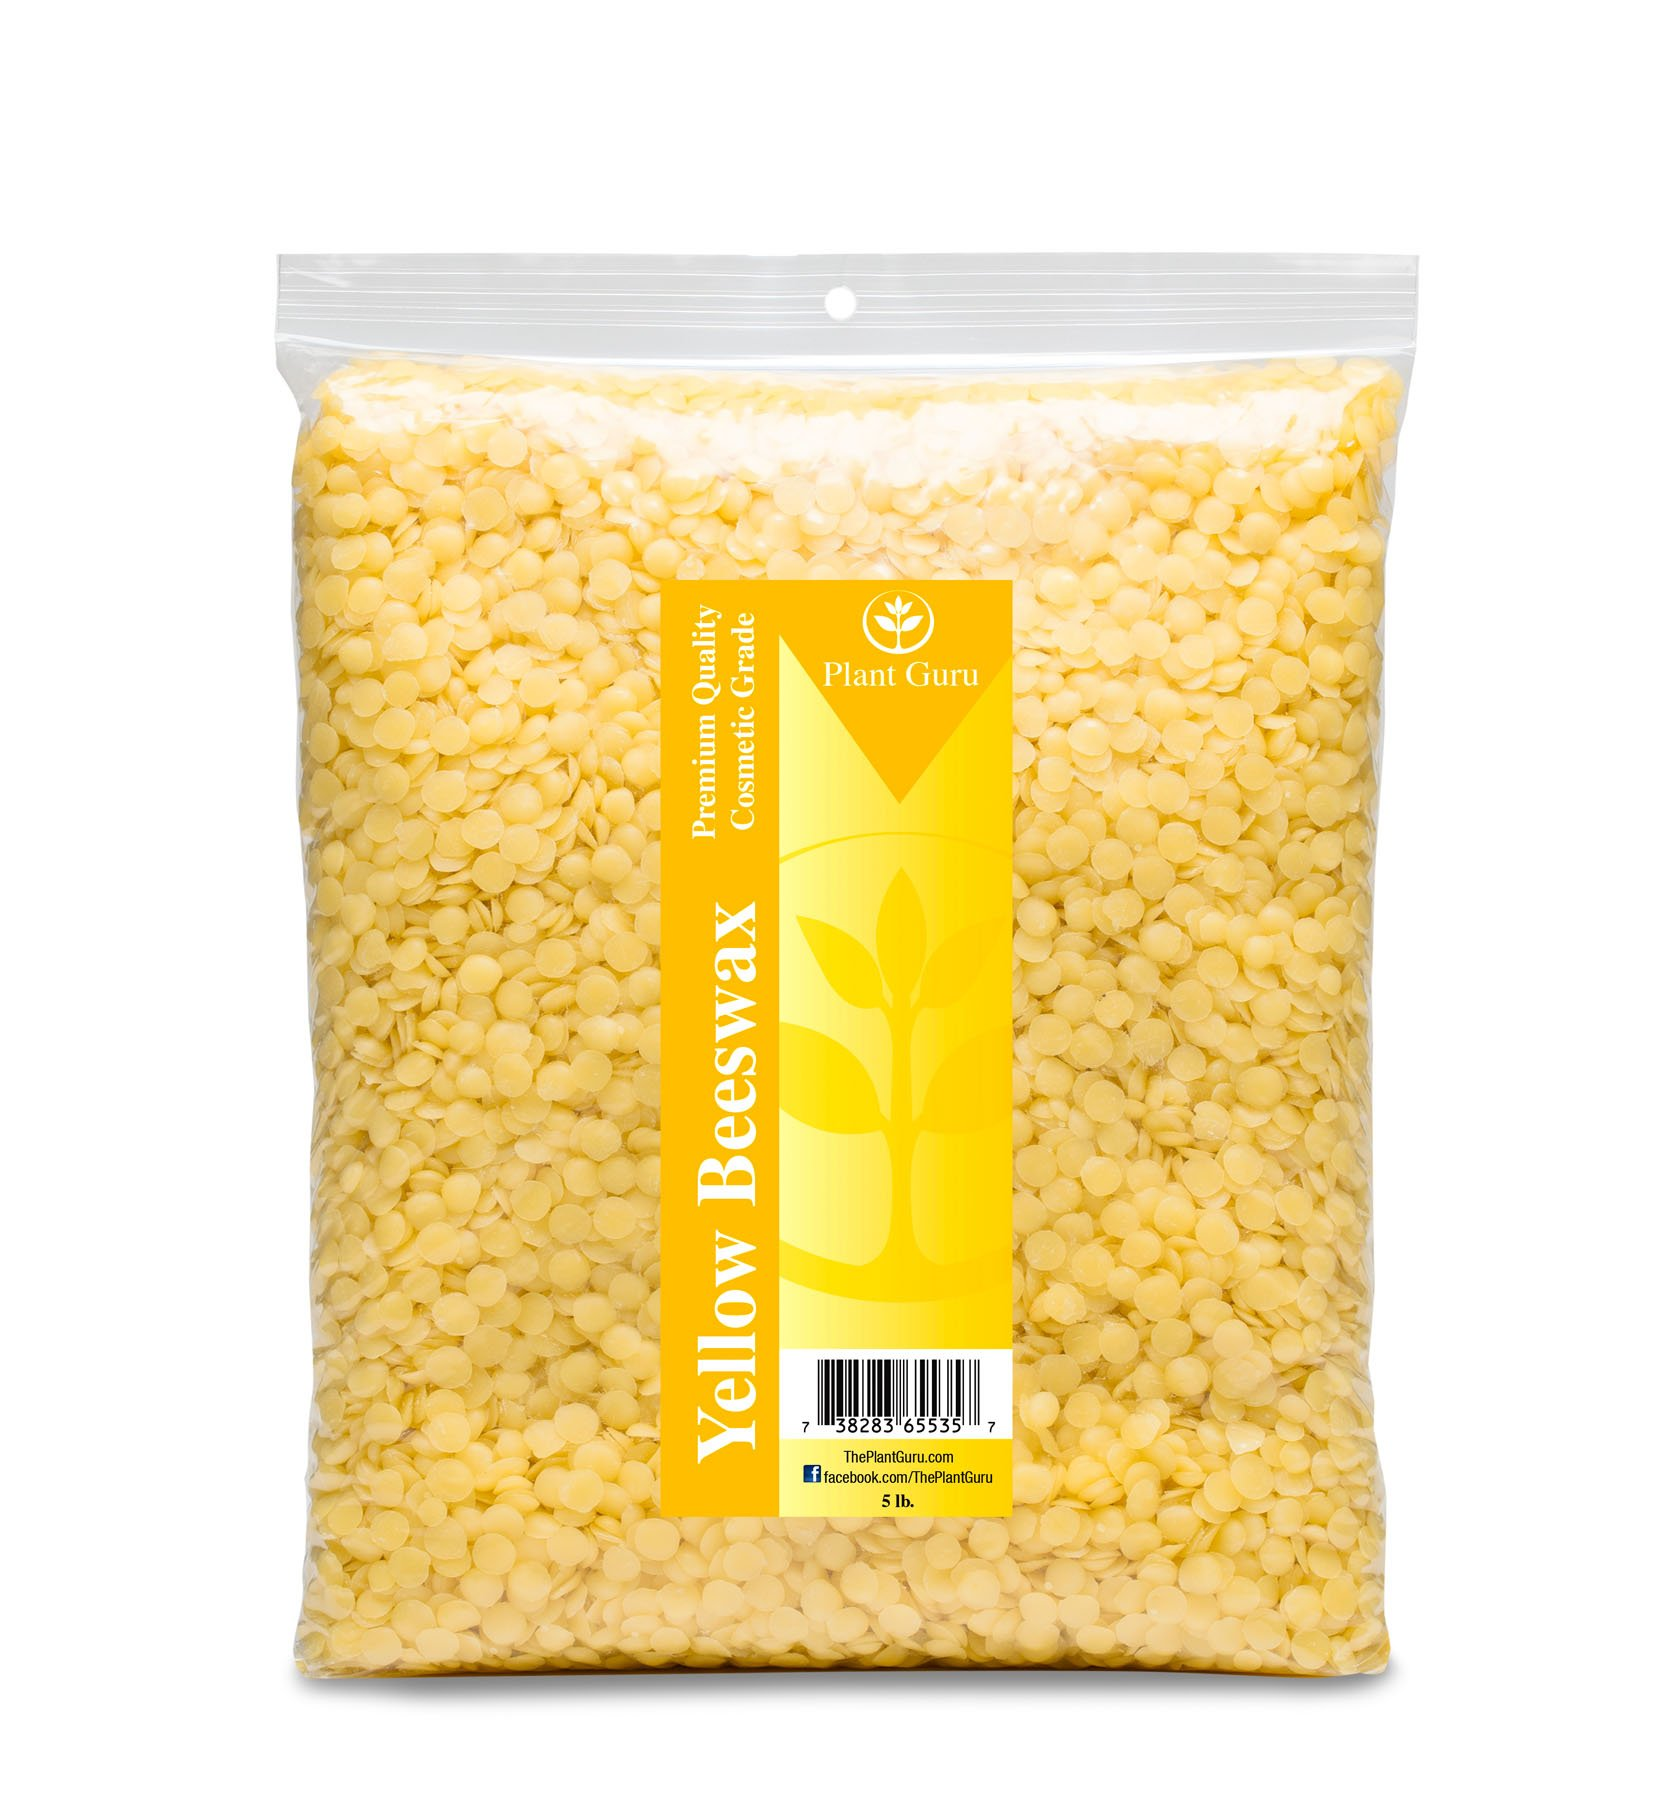 Yellow Beeswax Pellets 5 lb Bulk 100% Pure And Natural Triple Filtered For Skin, Face, Body and Hair Care DIY Creams, Lotions, Lip Balm and Soap Making Supplies.